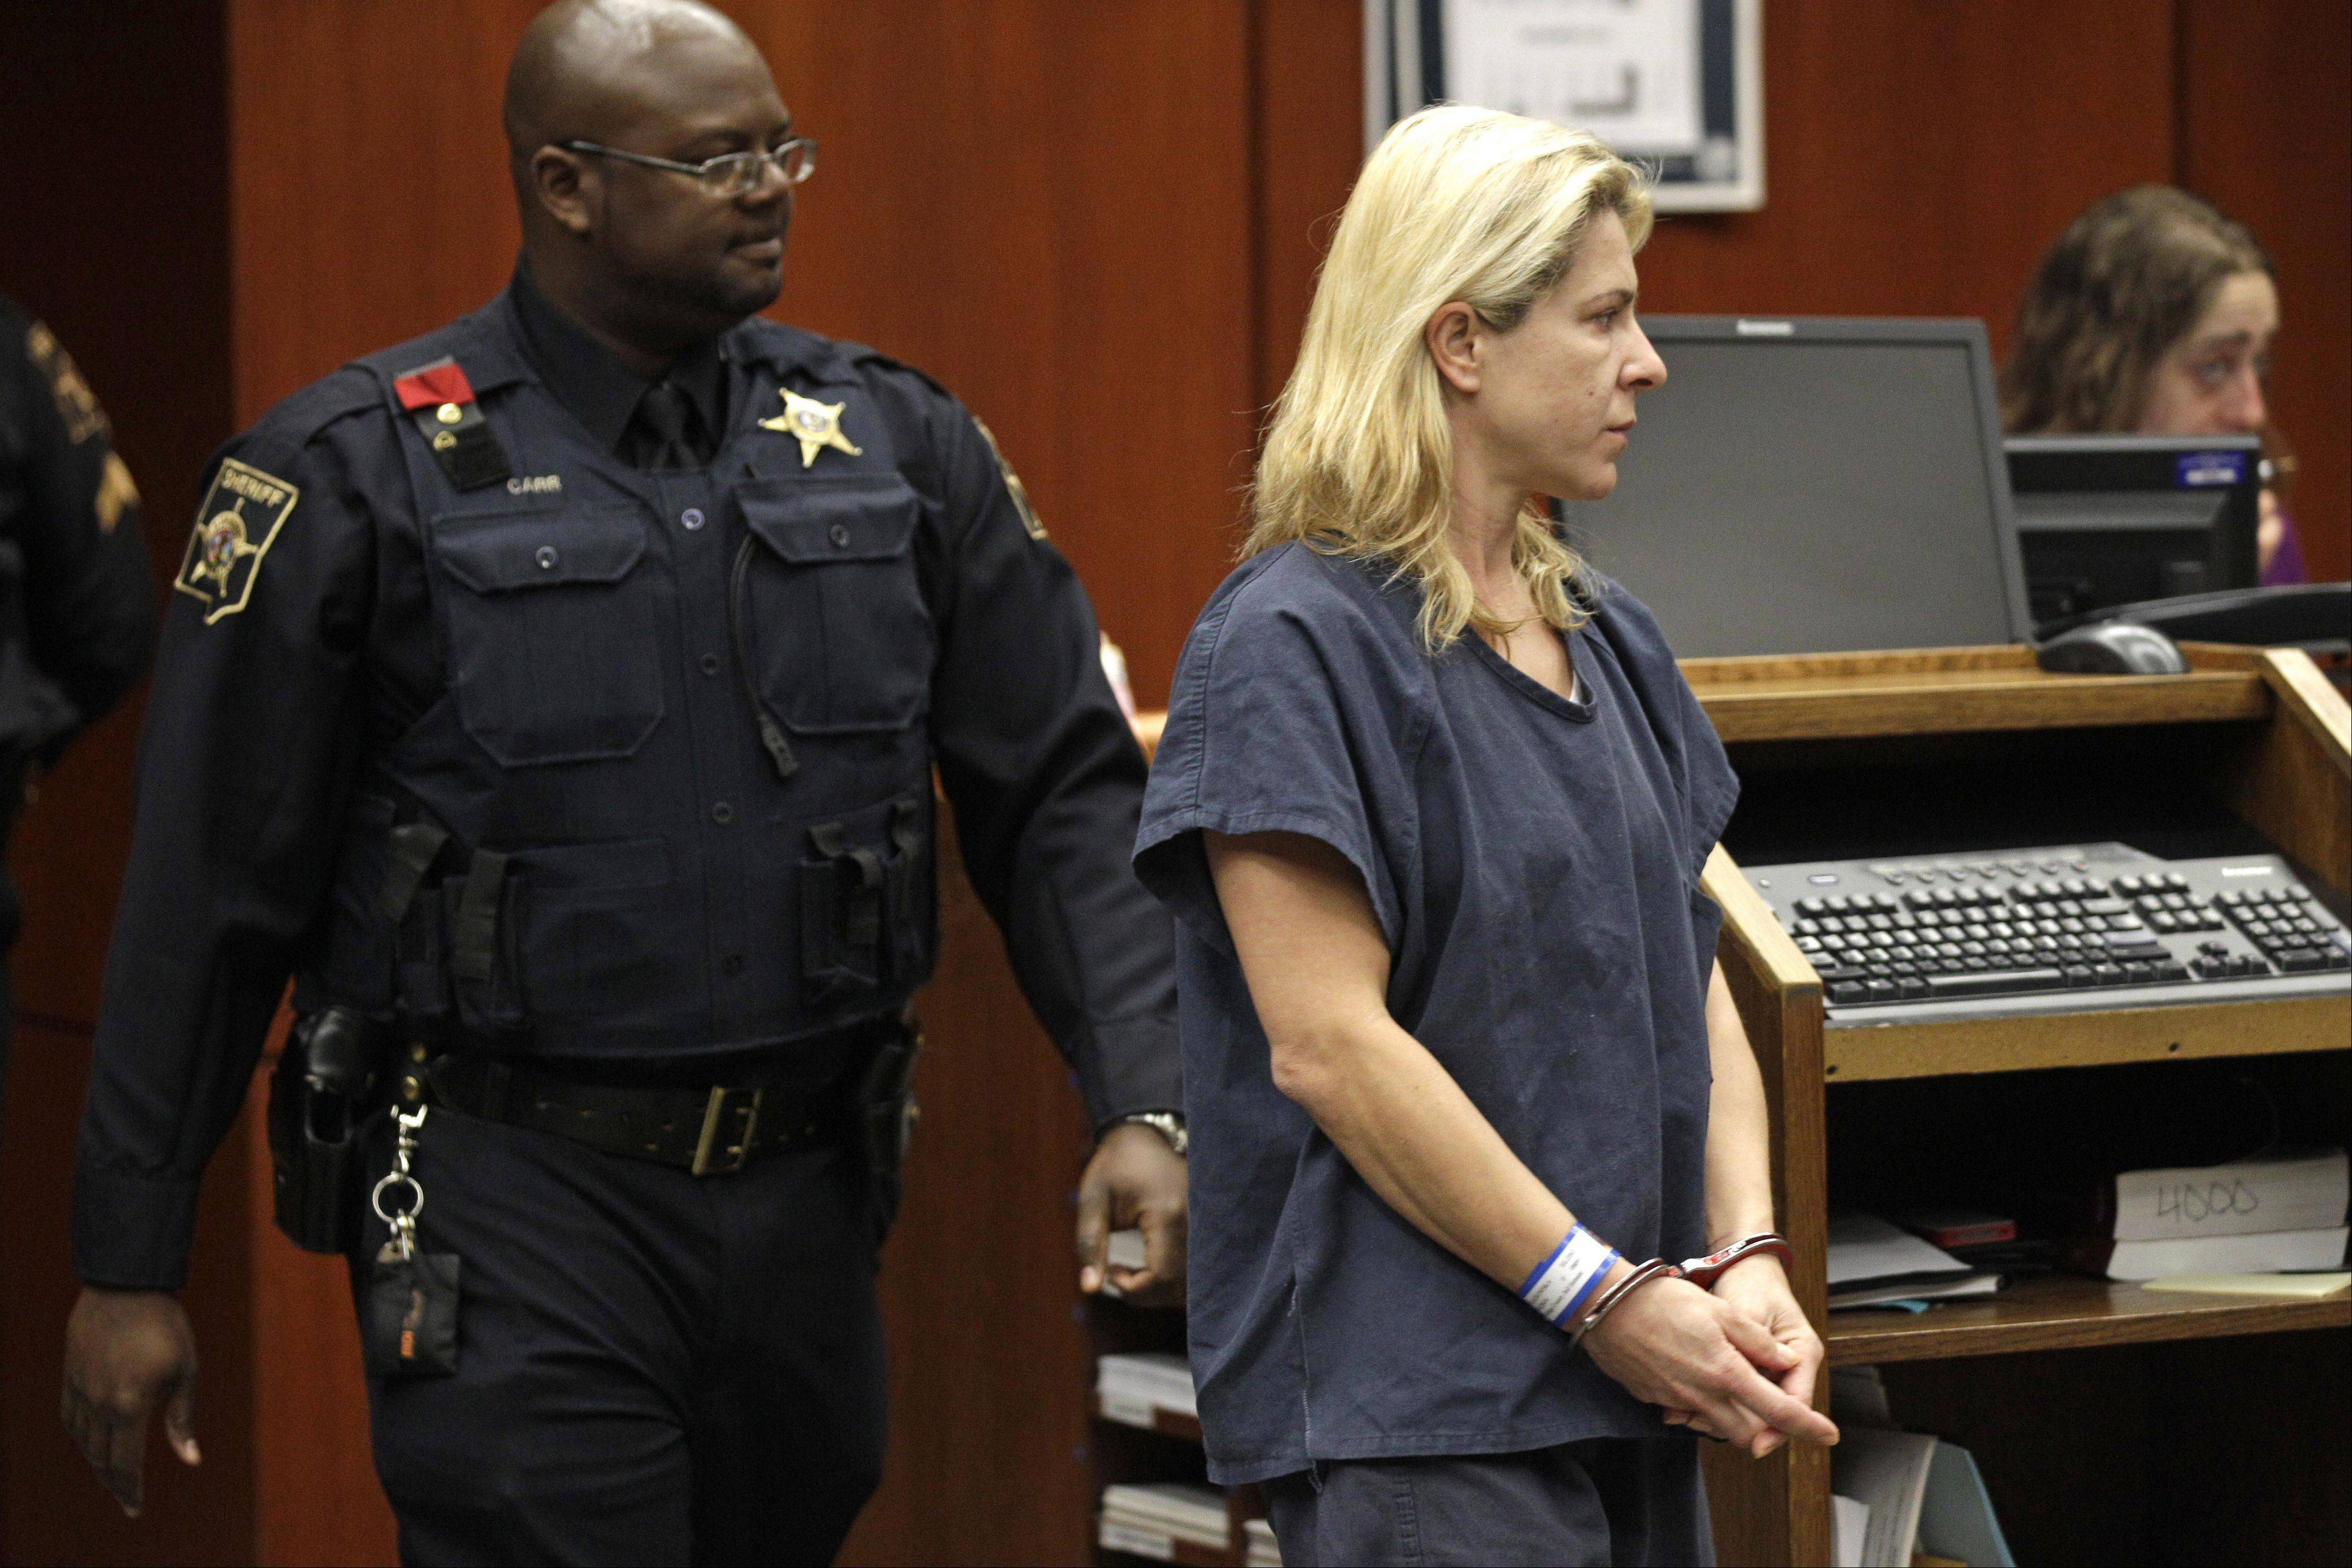 Psych exam under way for Naperville mom charged in child slayings